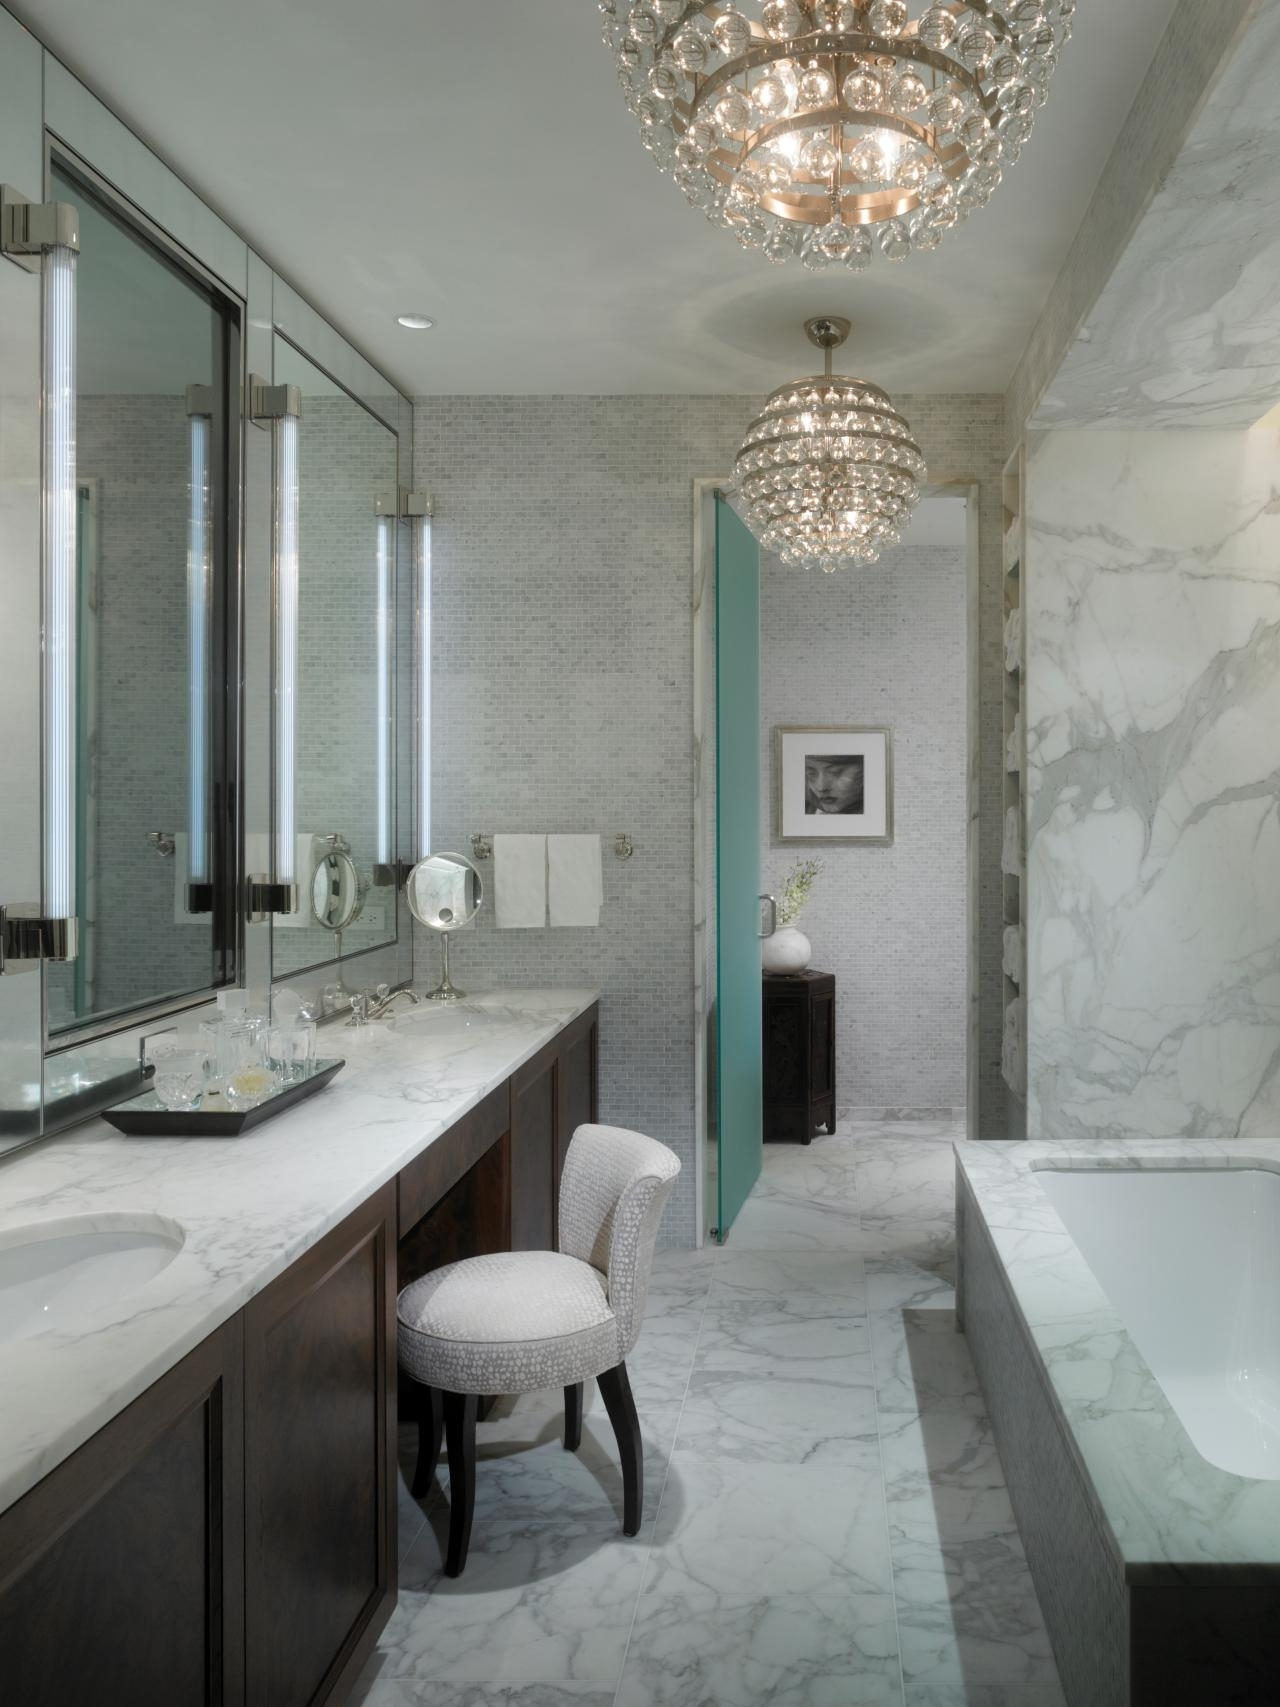 Modern Bathroom Chandelier Lighting Regarding Most Up To Date Beautiful Small Bathroom Chandelier Ideas – Find Furniture Fit For (View 9 of 20)